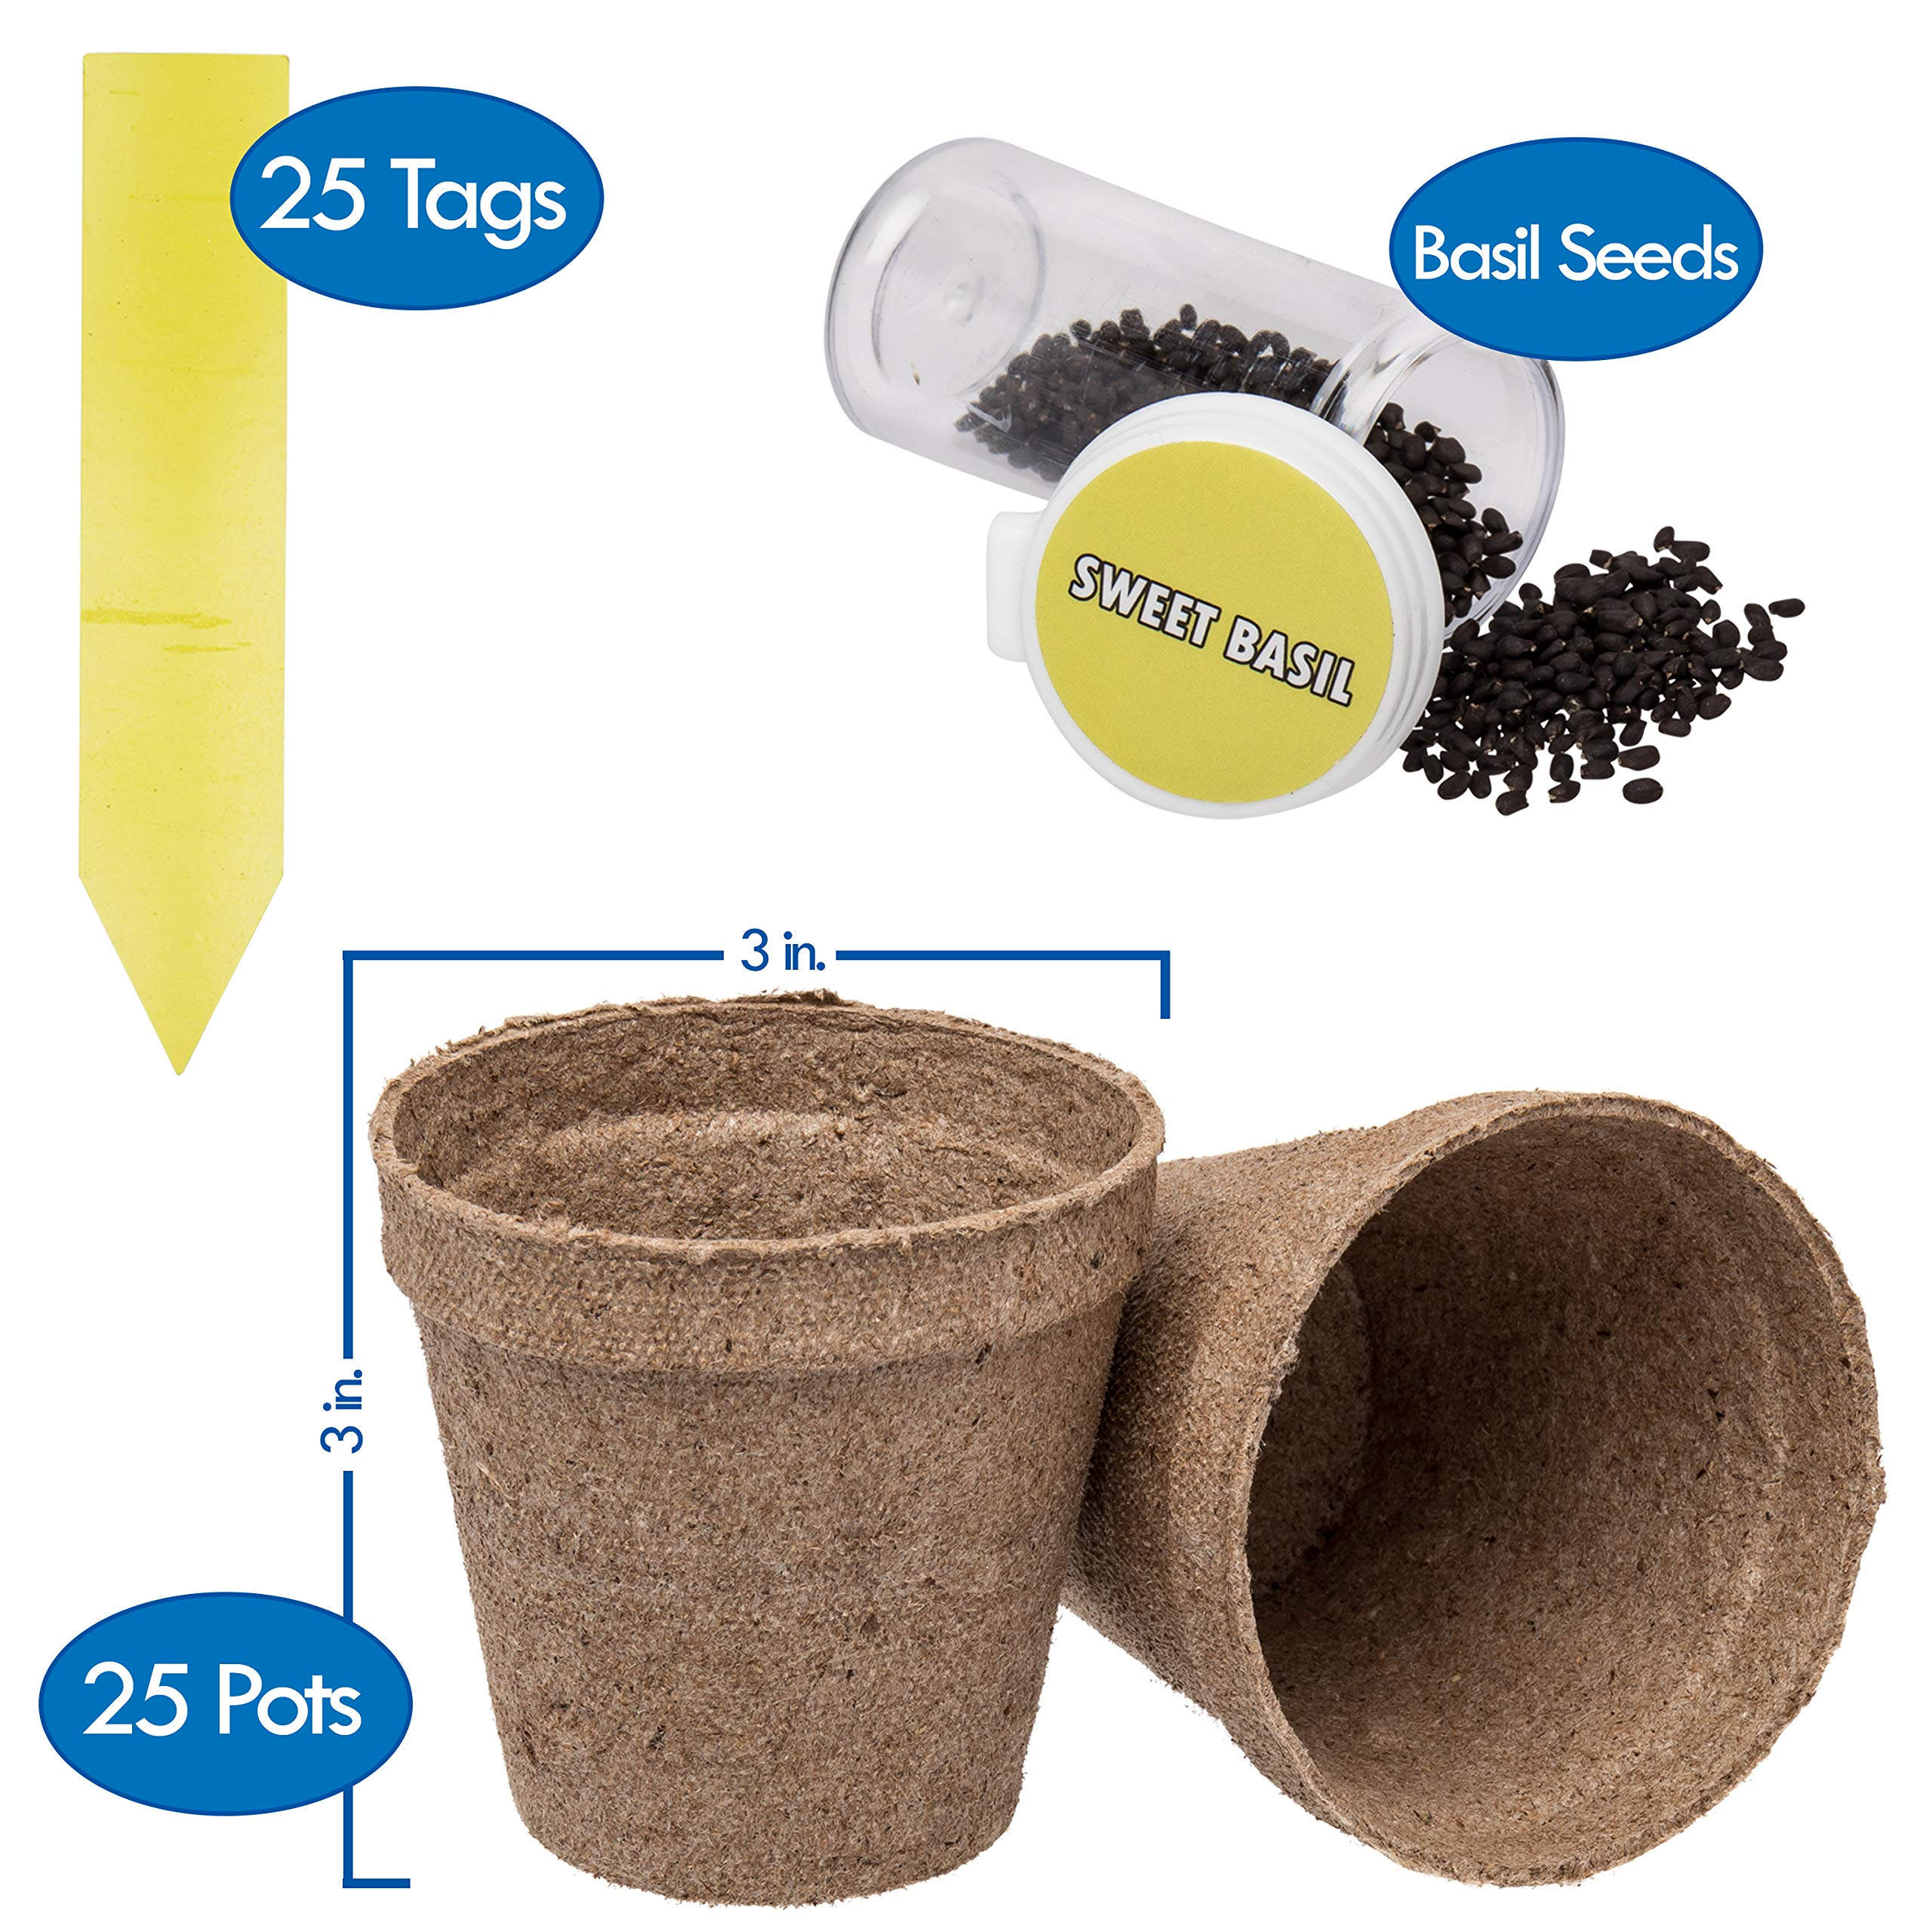 Ashbrook Outdoors Biodegradable Seed Starter Peat Pots - Large 3'' | 25 Pack of Gardening Pots for Herbs, Seeds, Flowers & Plants | Includes 25 Easy Label Tags & Bonus Basil Seeds | Full Growing Kit